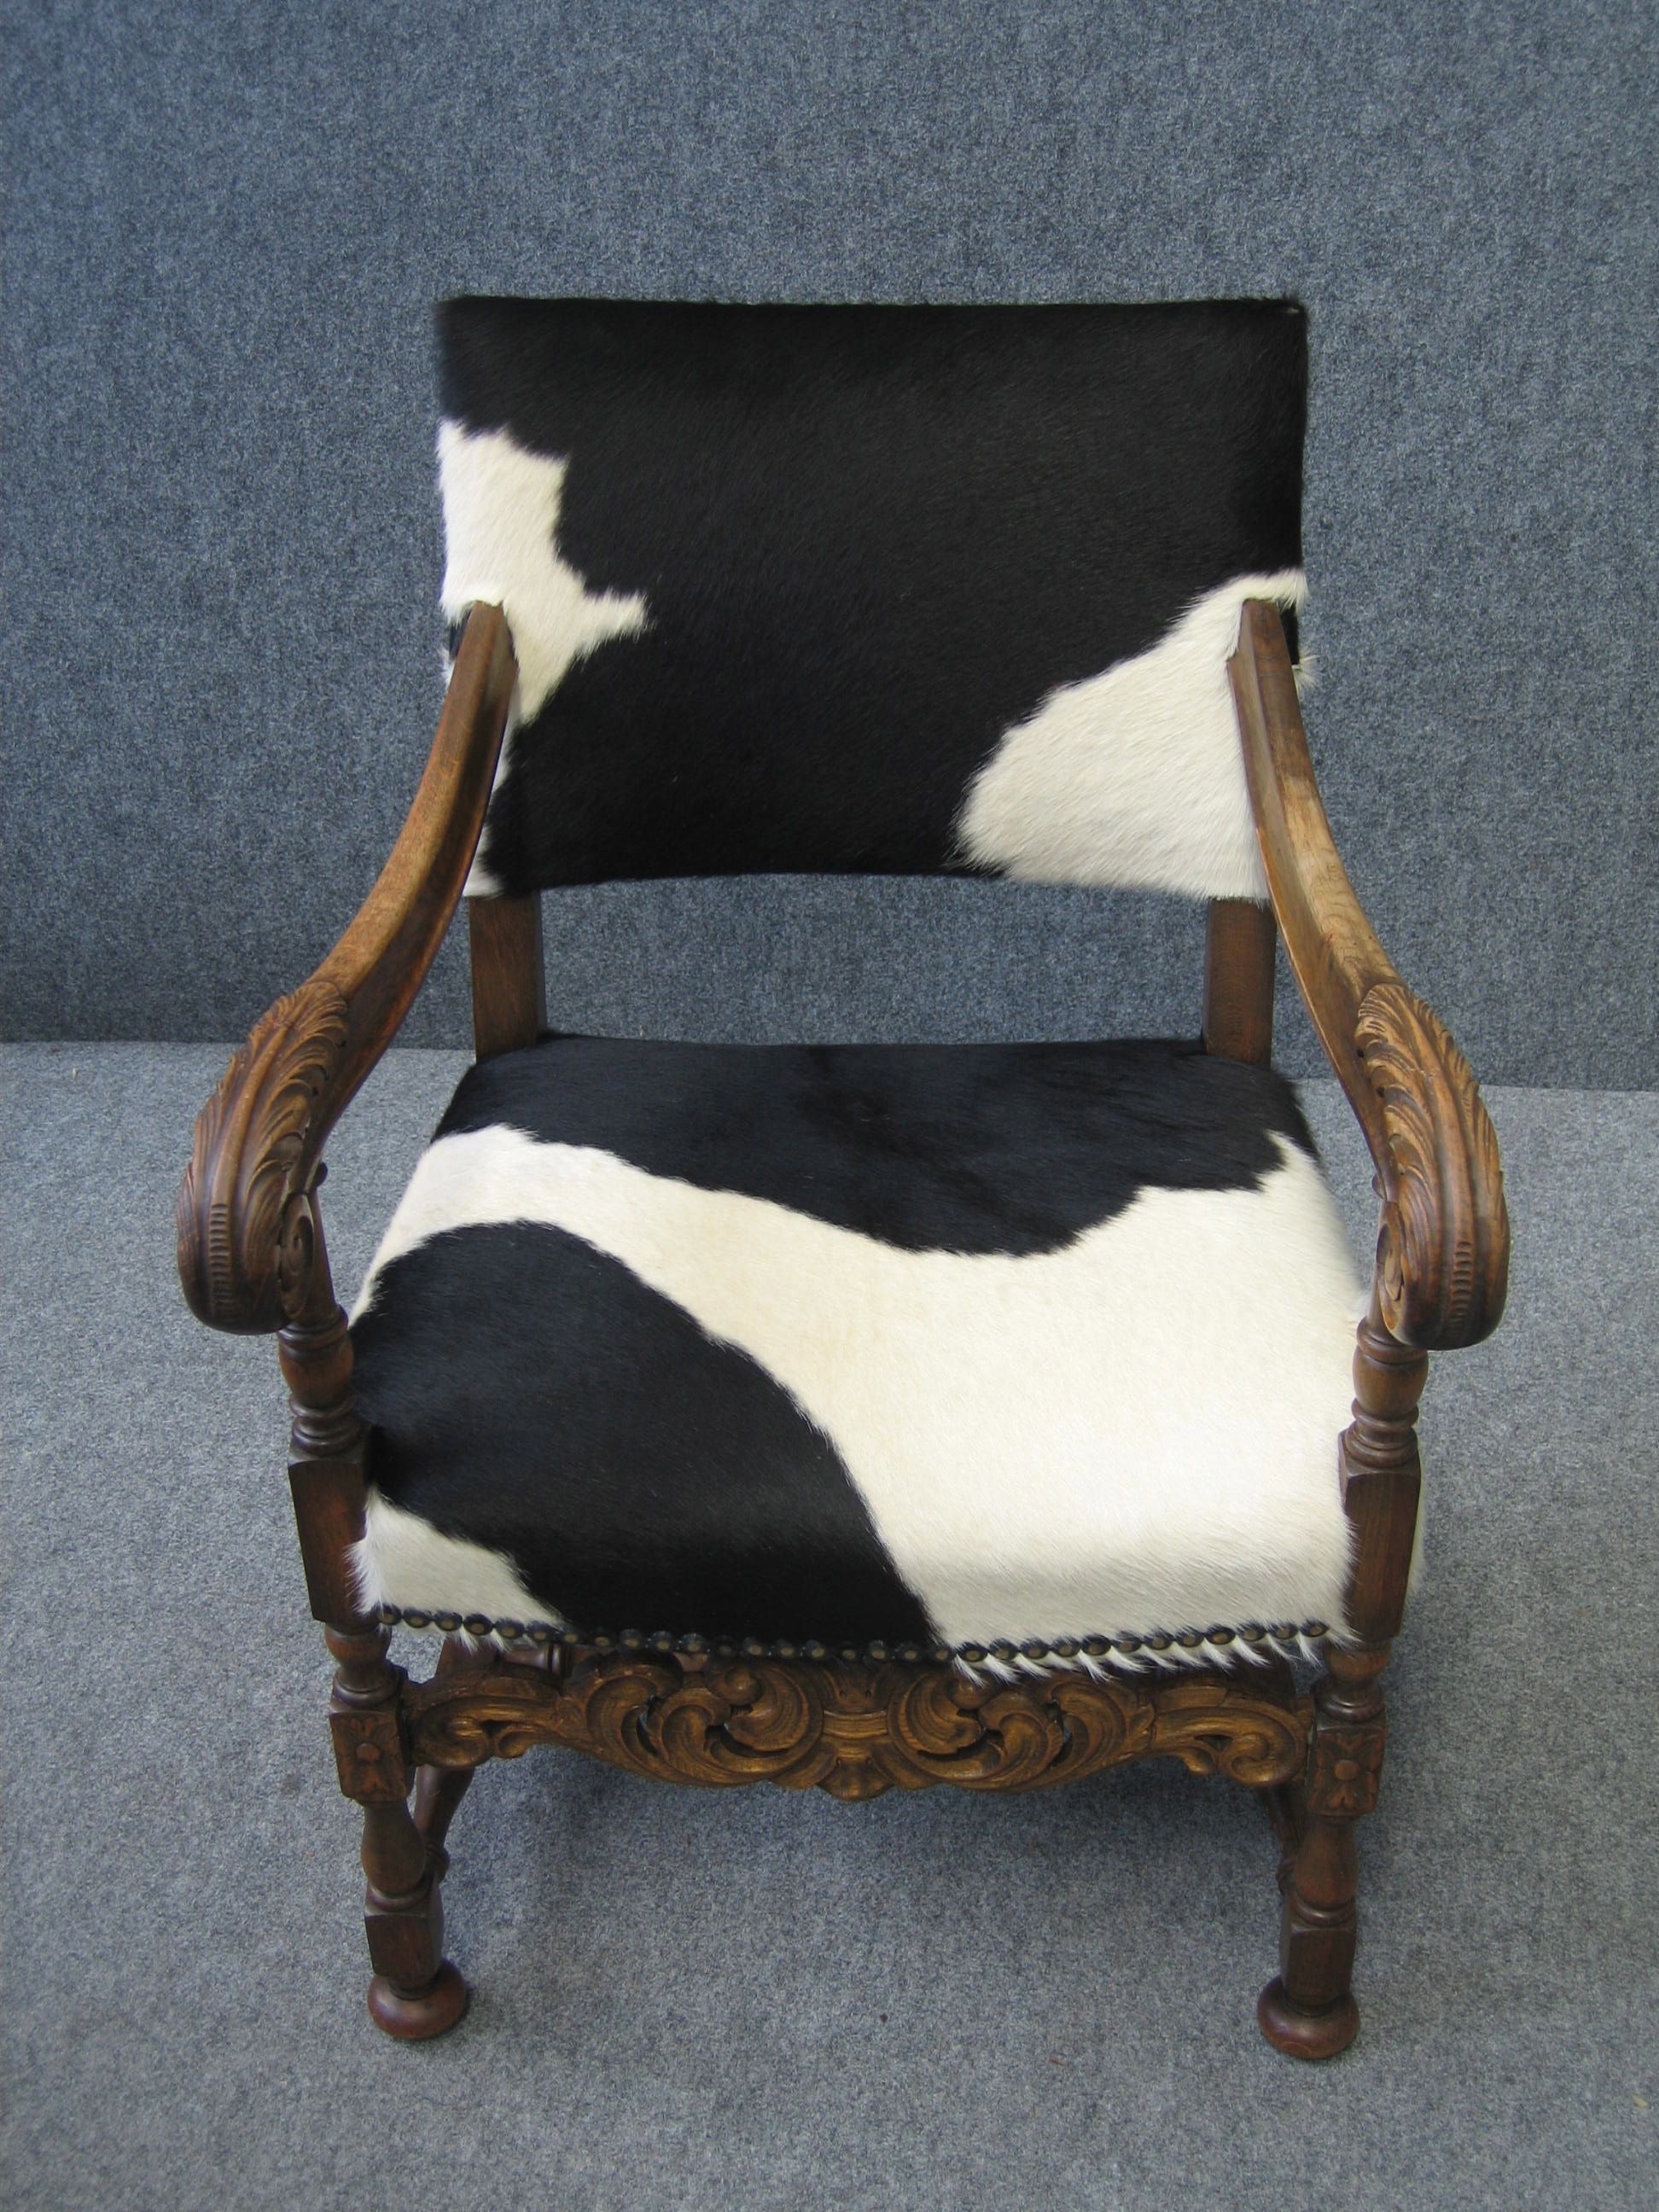 Black And White Cowhide On A Vintage Empire Chair  Www.retropiahomewares.com.au